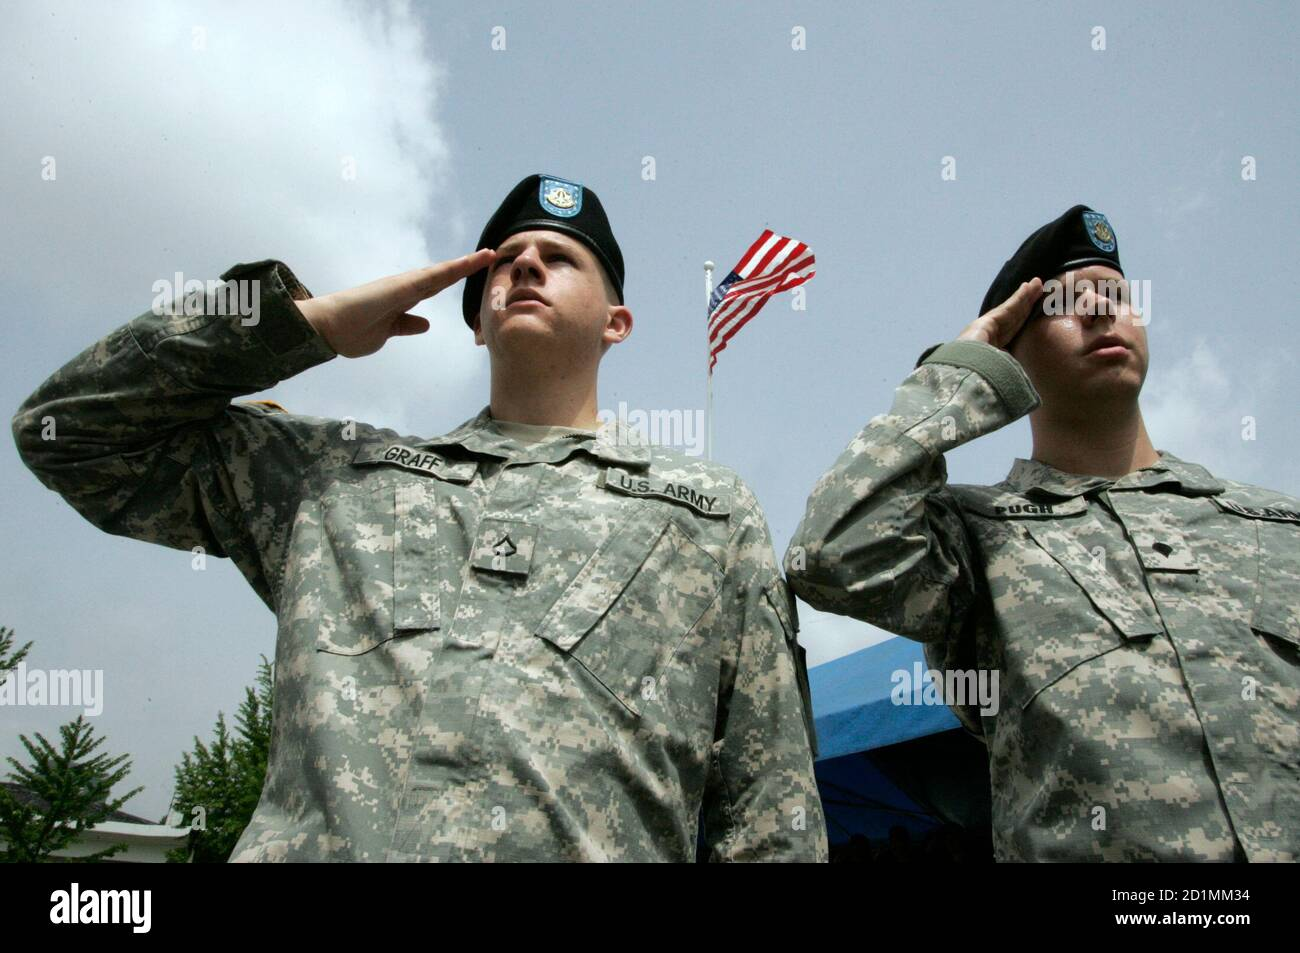 Salute The Troops with the Stars and Stripes